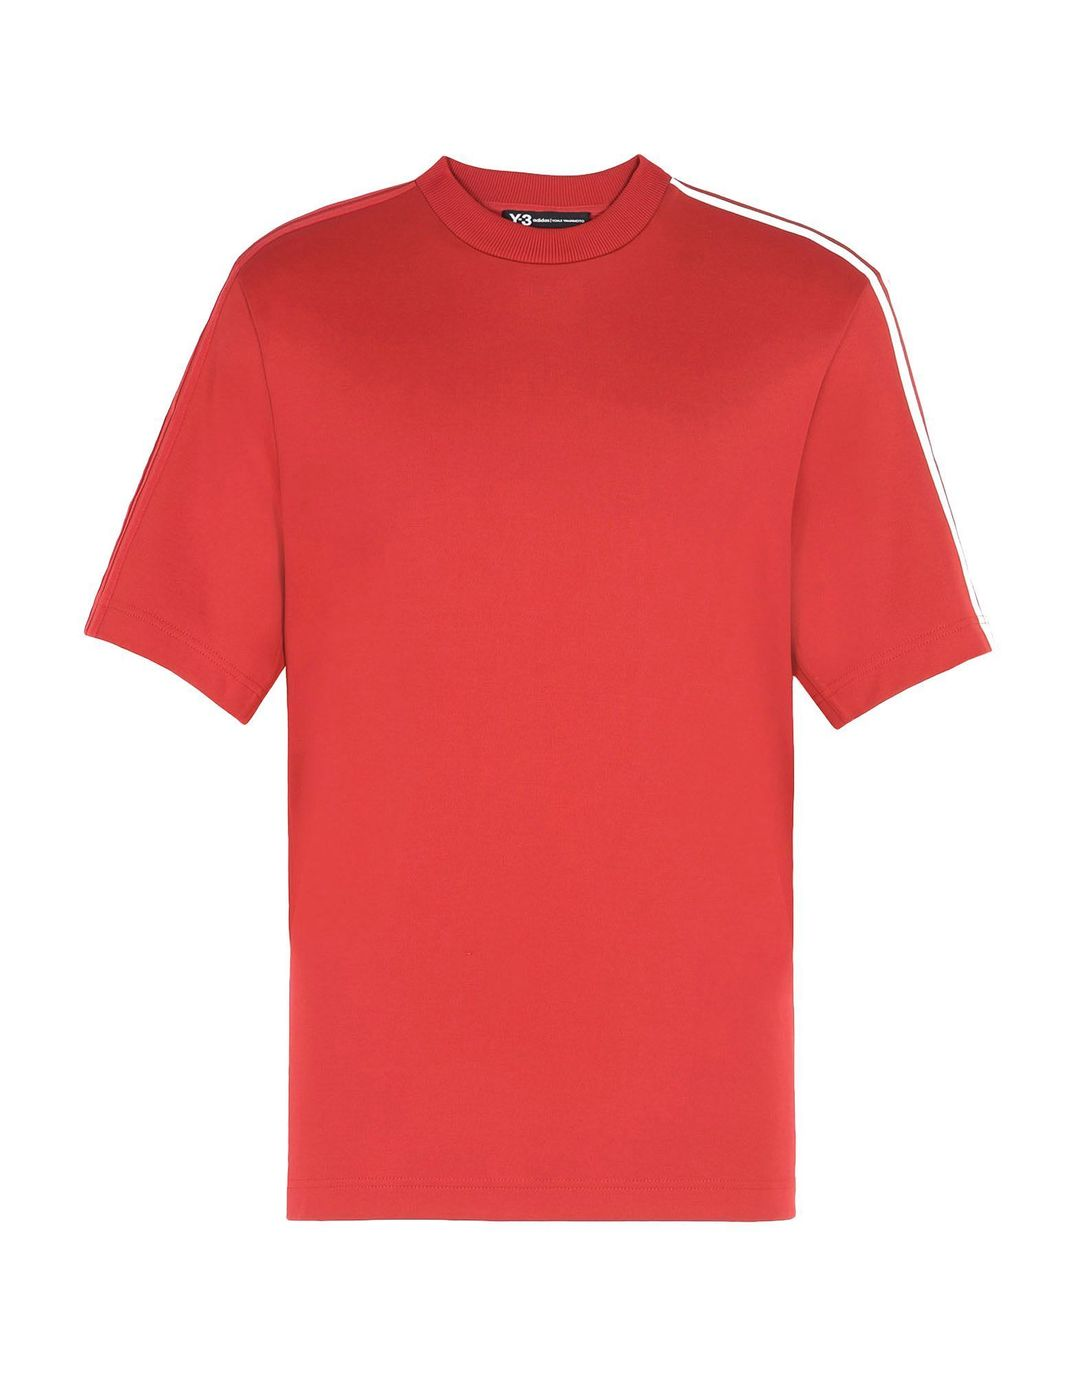 Y-3 3-STRIPES TEE CHILI PEPPER CY6959